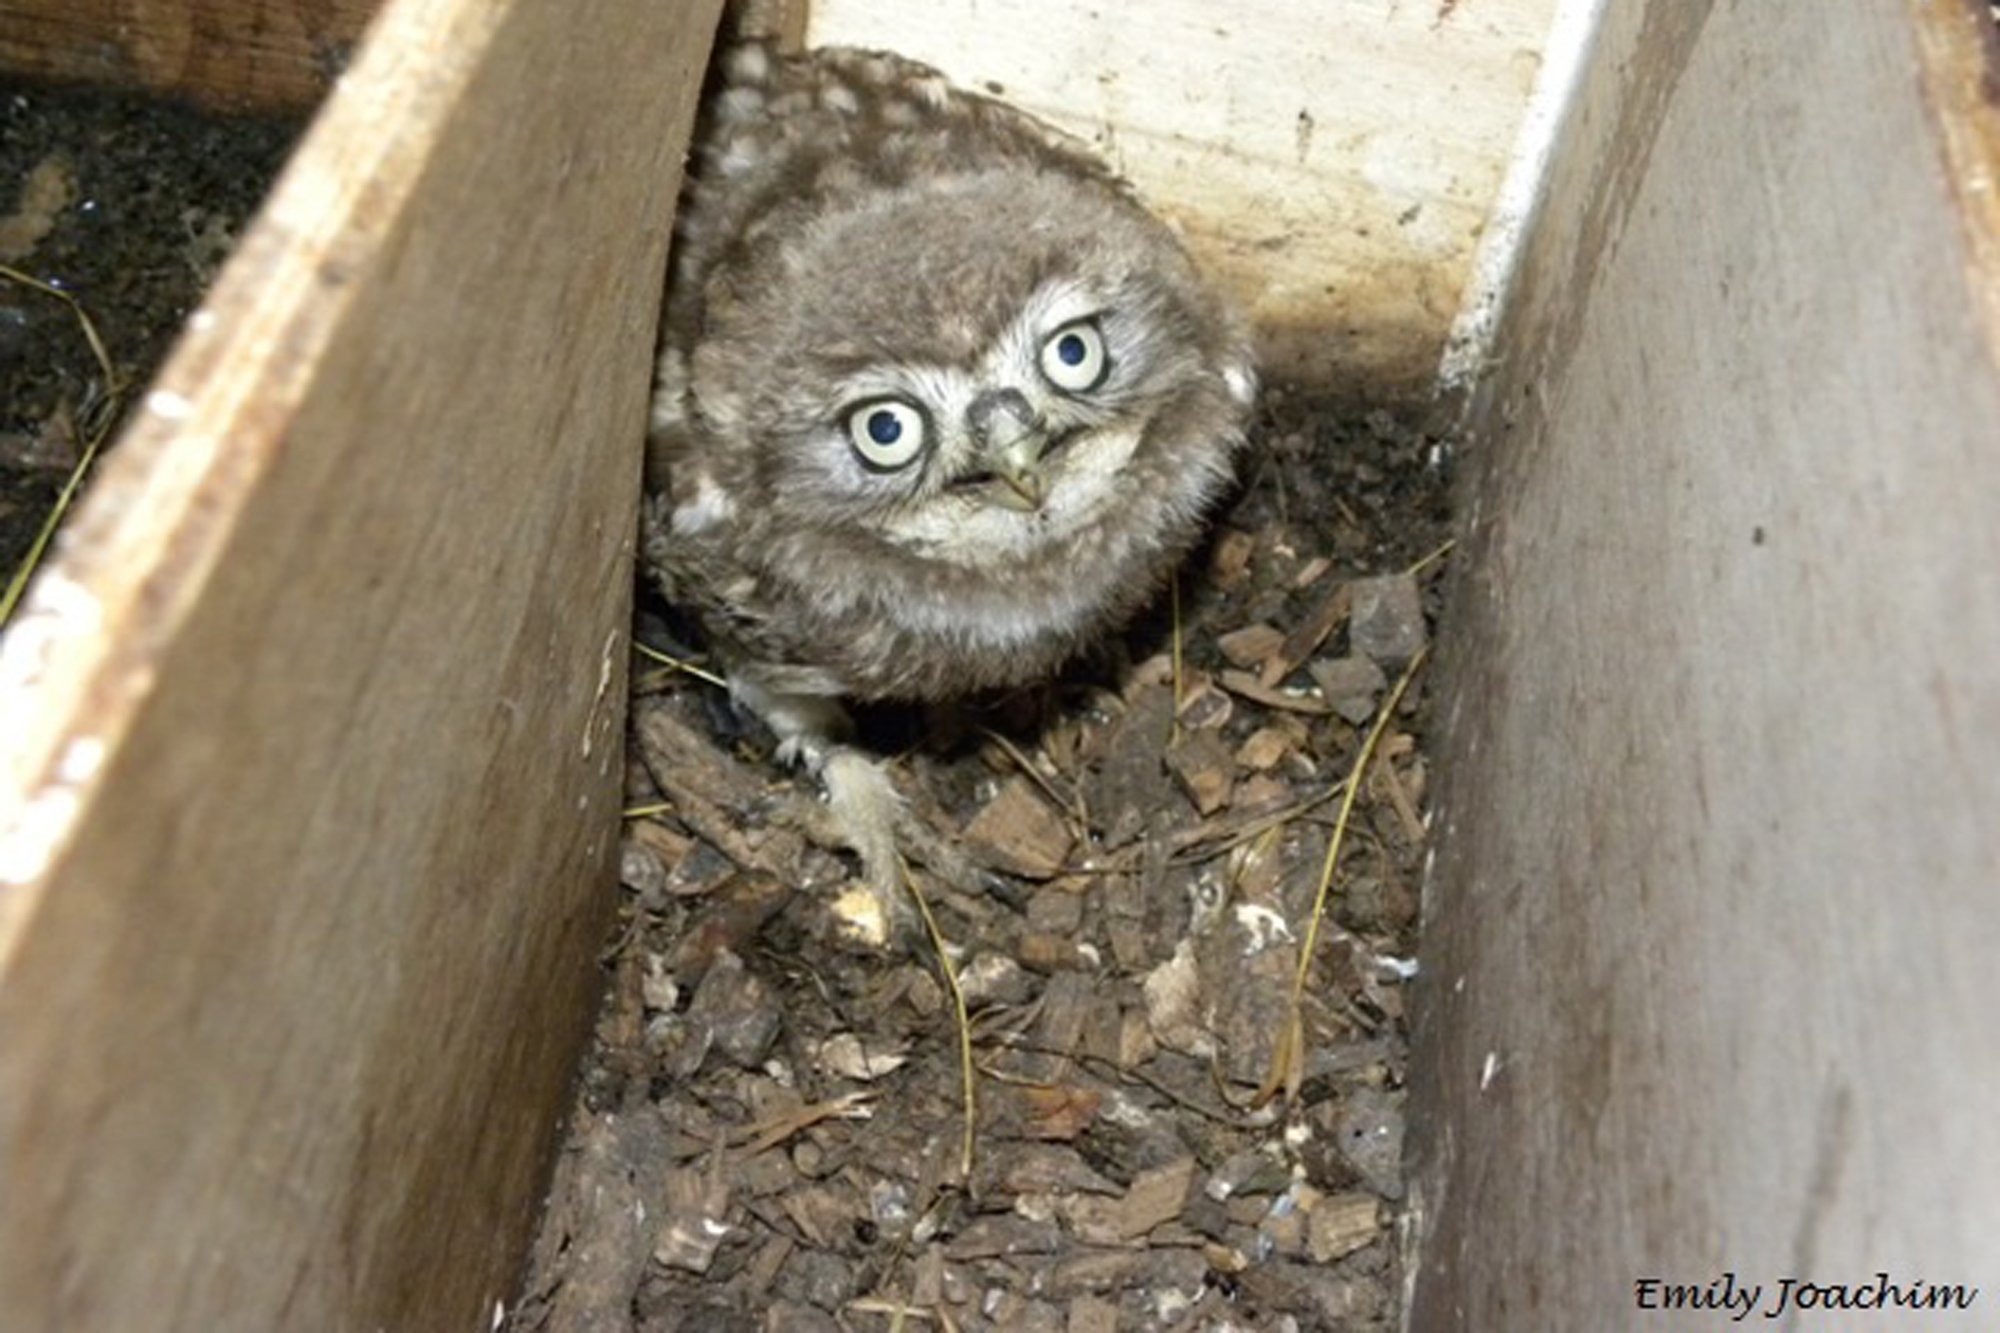 Juvenile Little Owl in a nest box by Emily Joachim